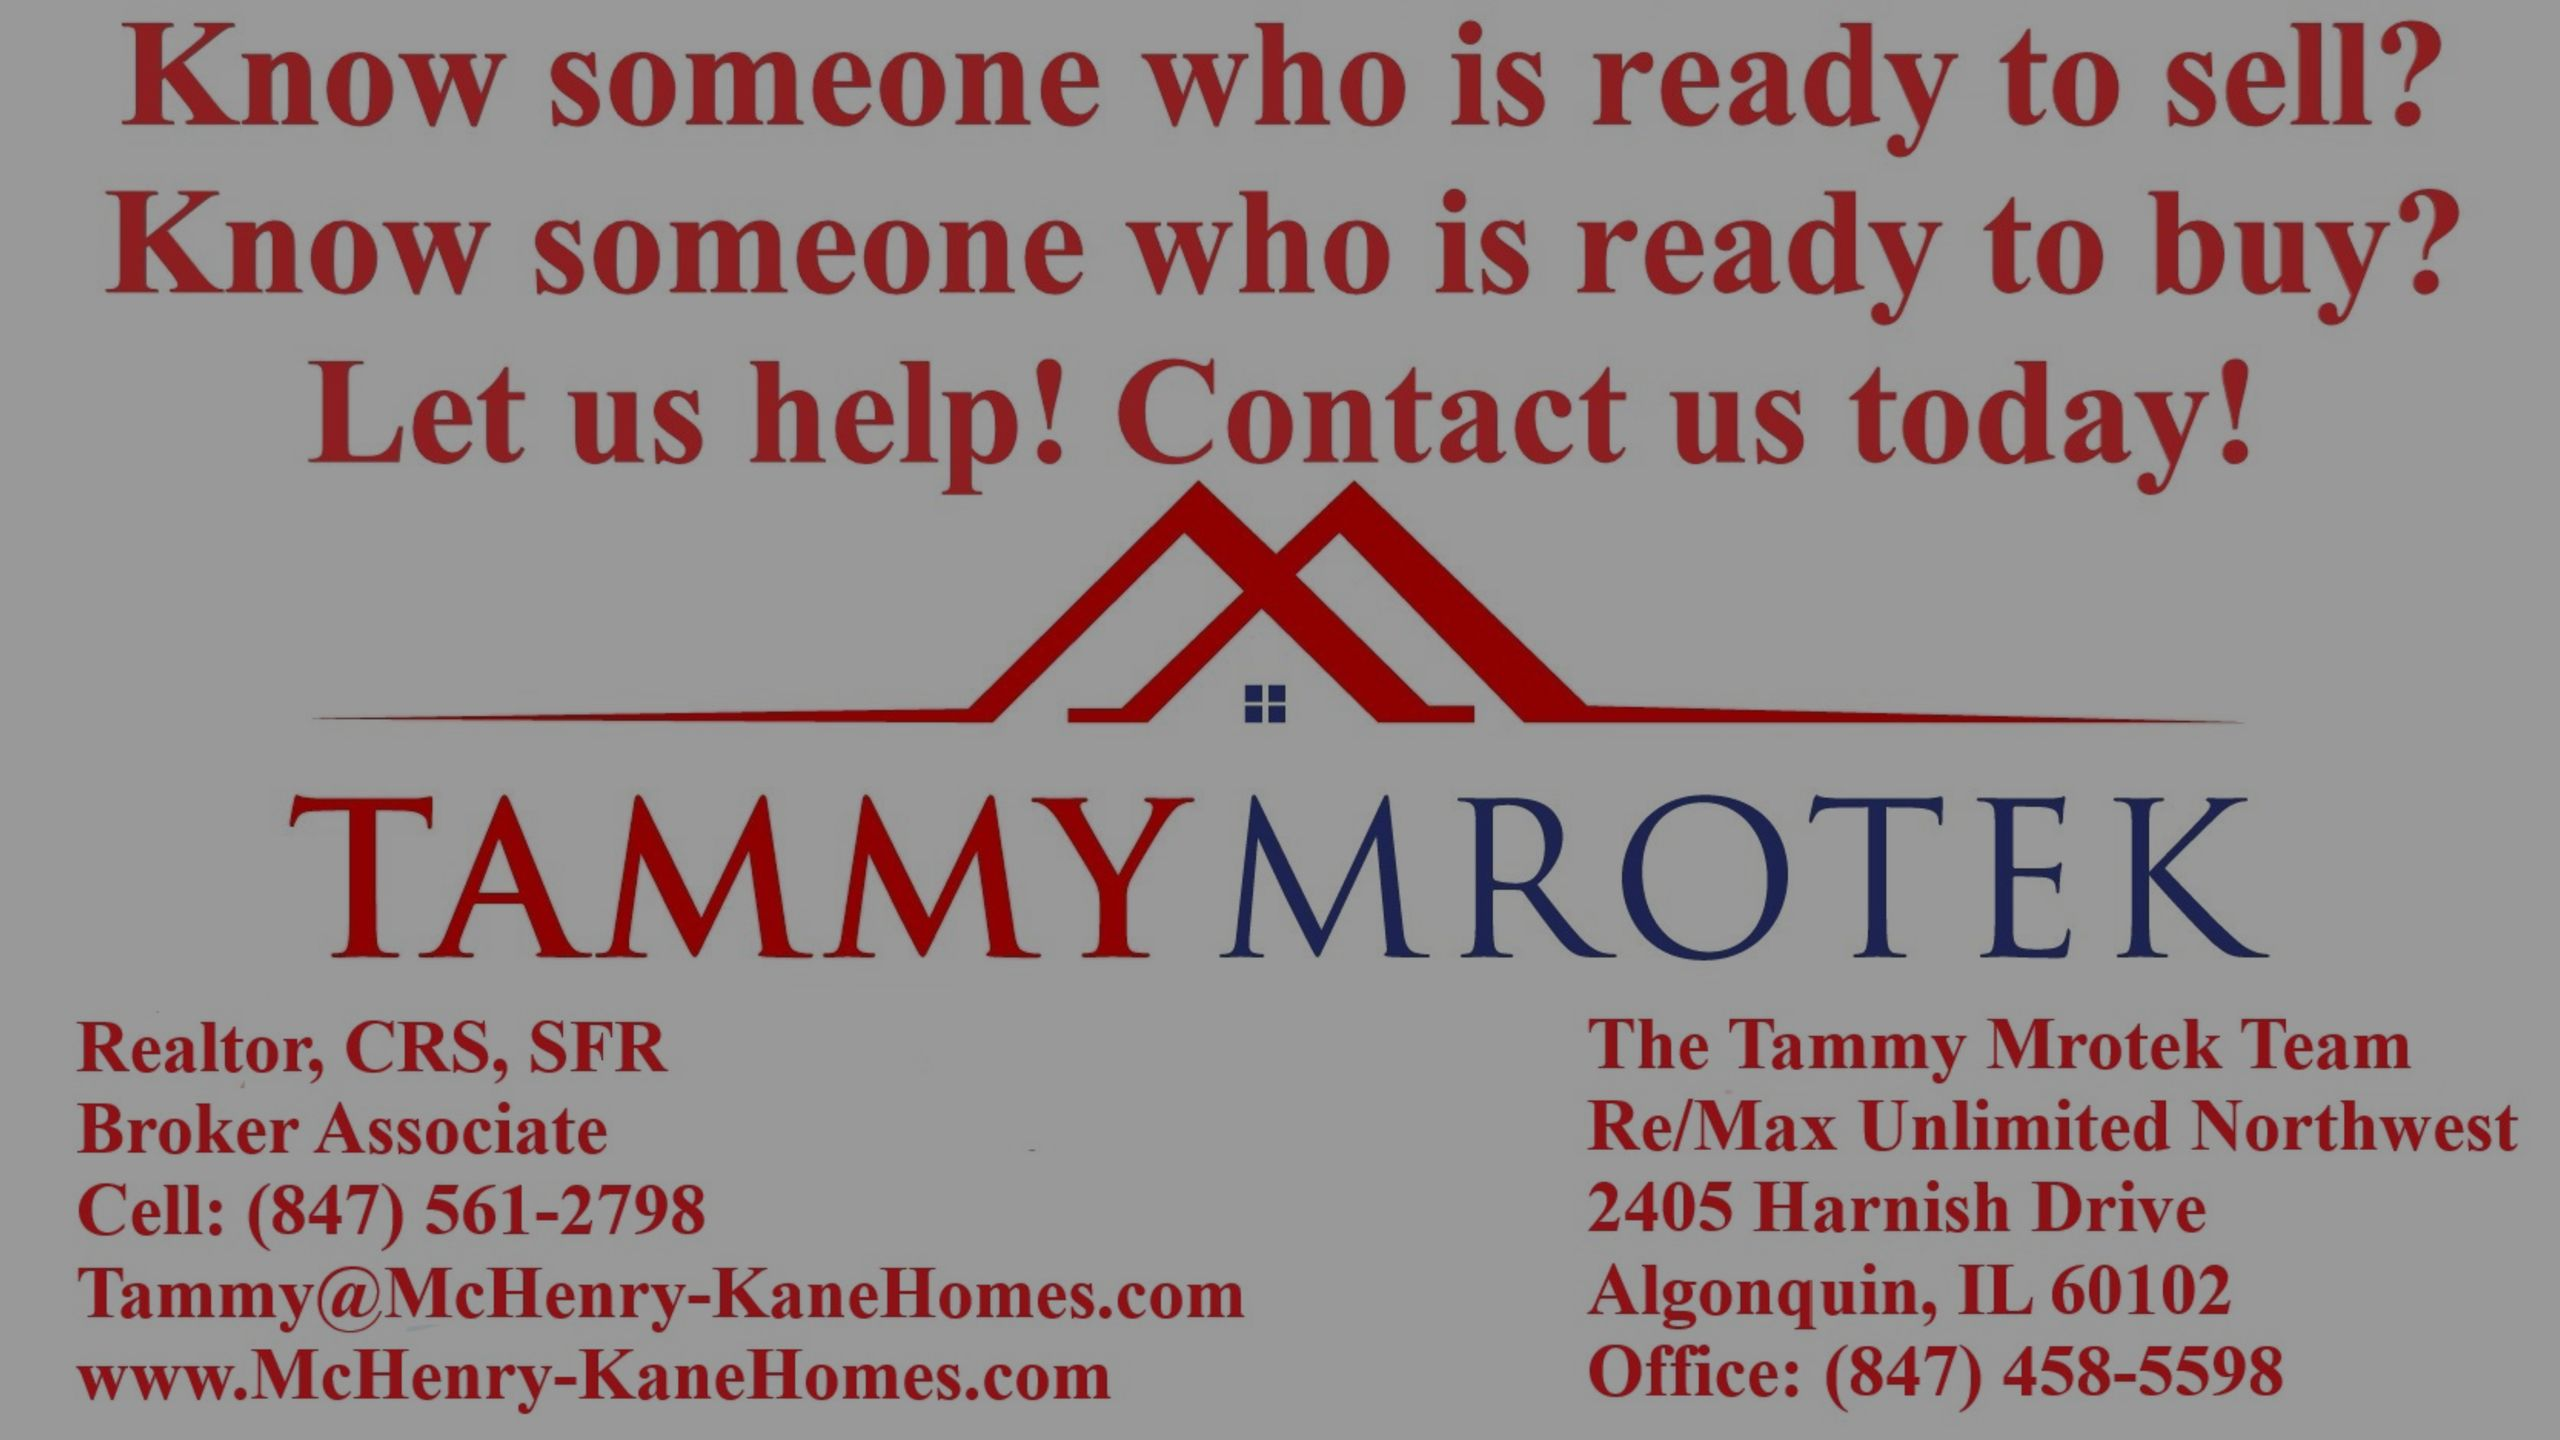 Know Someone Looking To Sell? Send Them To The Tammy Mrotek Team!